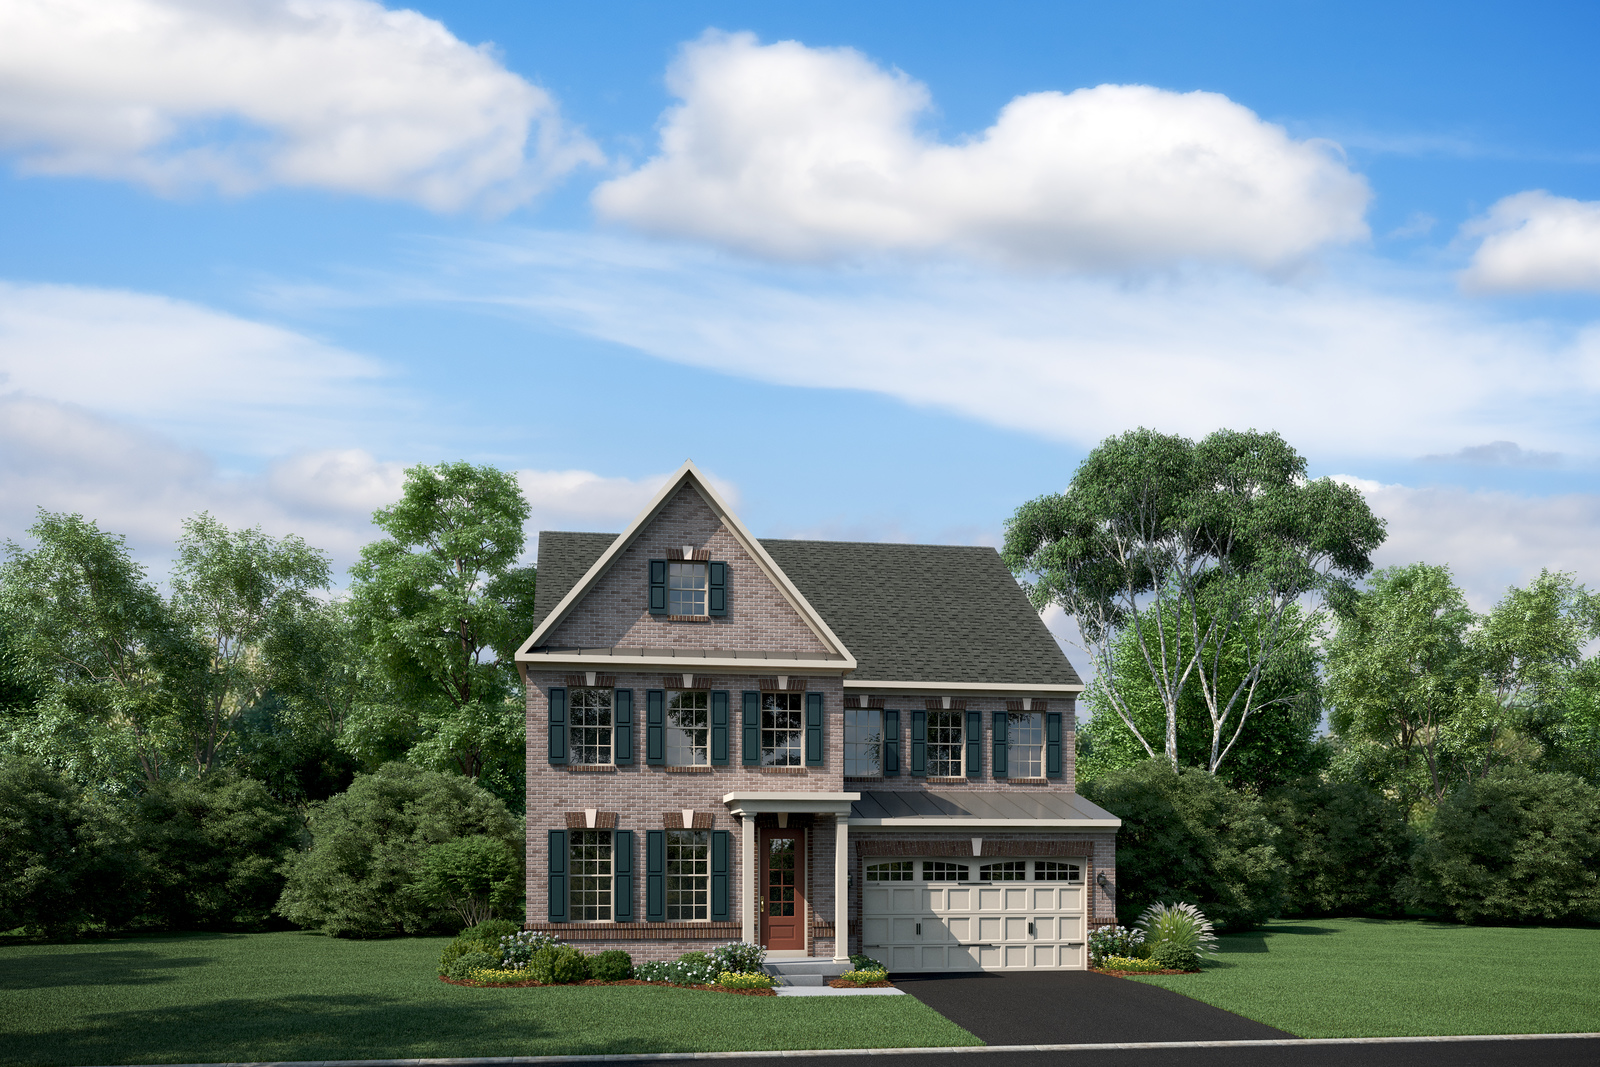 New tyler home model for sale heartland homes for Heartland homes pittsburgh floor plans